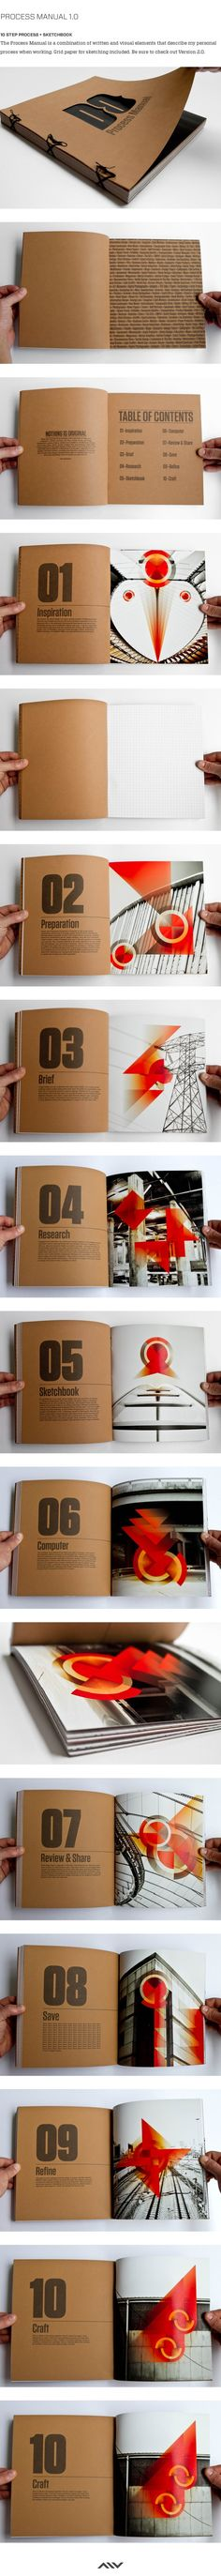 Process Manual Volume 1.0 on Behance Pretty! Pretty! Pretty!